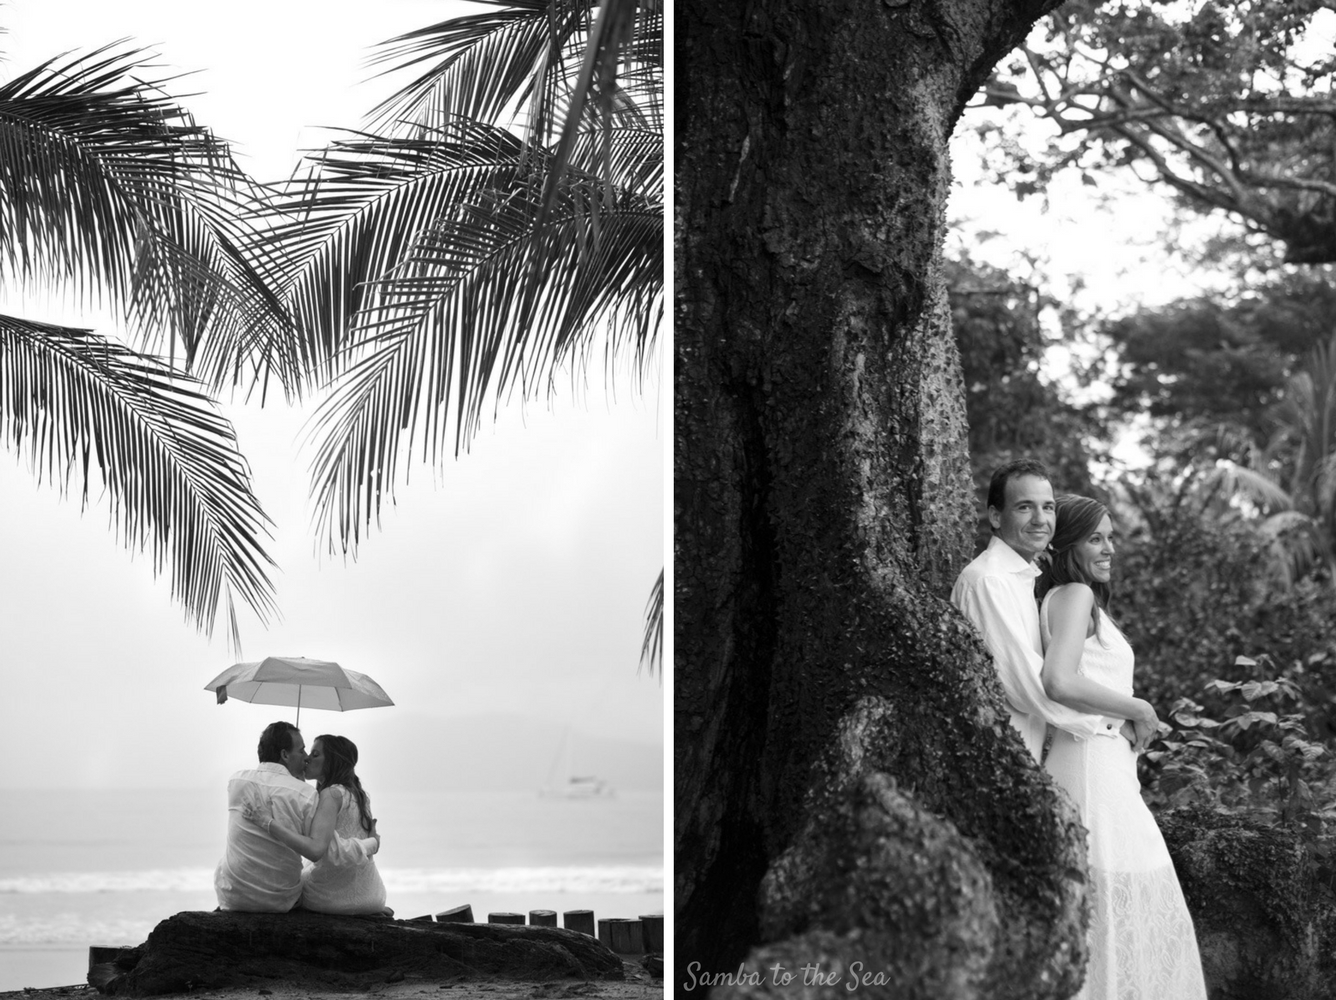 Couple kissing under an umbrella after their elopement in Tamarindo, Costa RIca. Photographed by Kristen M. Brown, Samba to the Sea Photography.